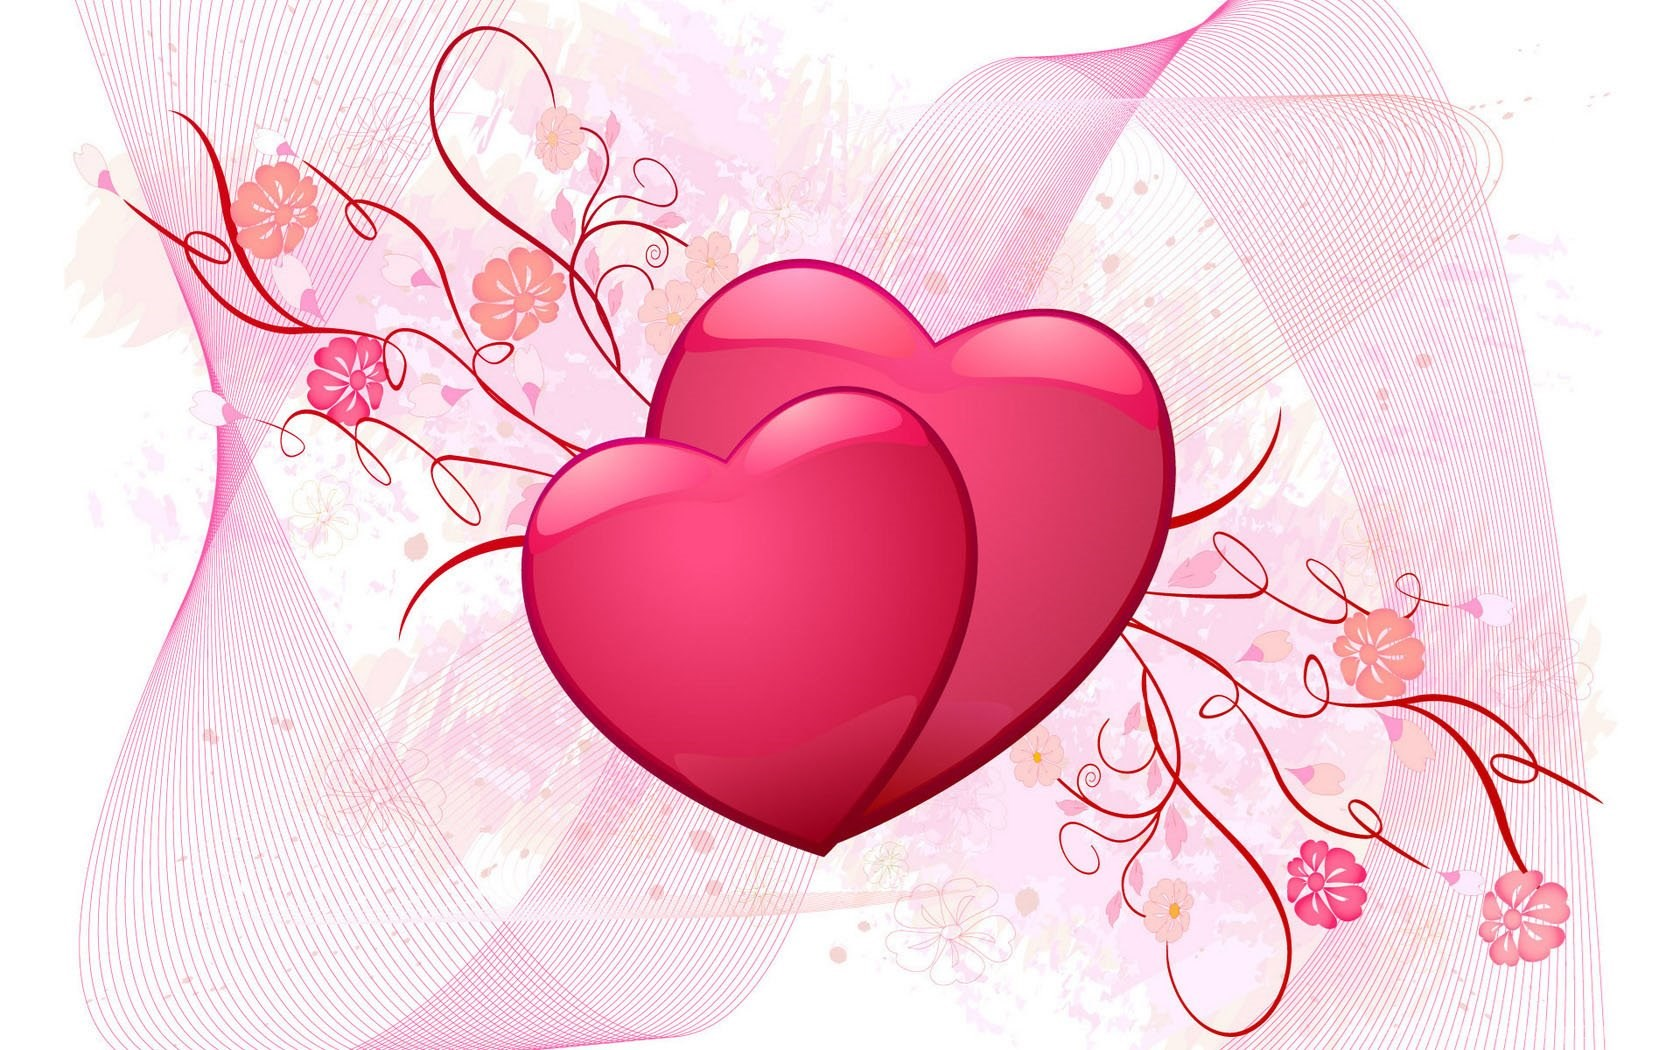 Valentine Day Wallpapers Free Hd Wallpapers Desktop Wallpapers